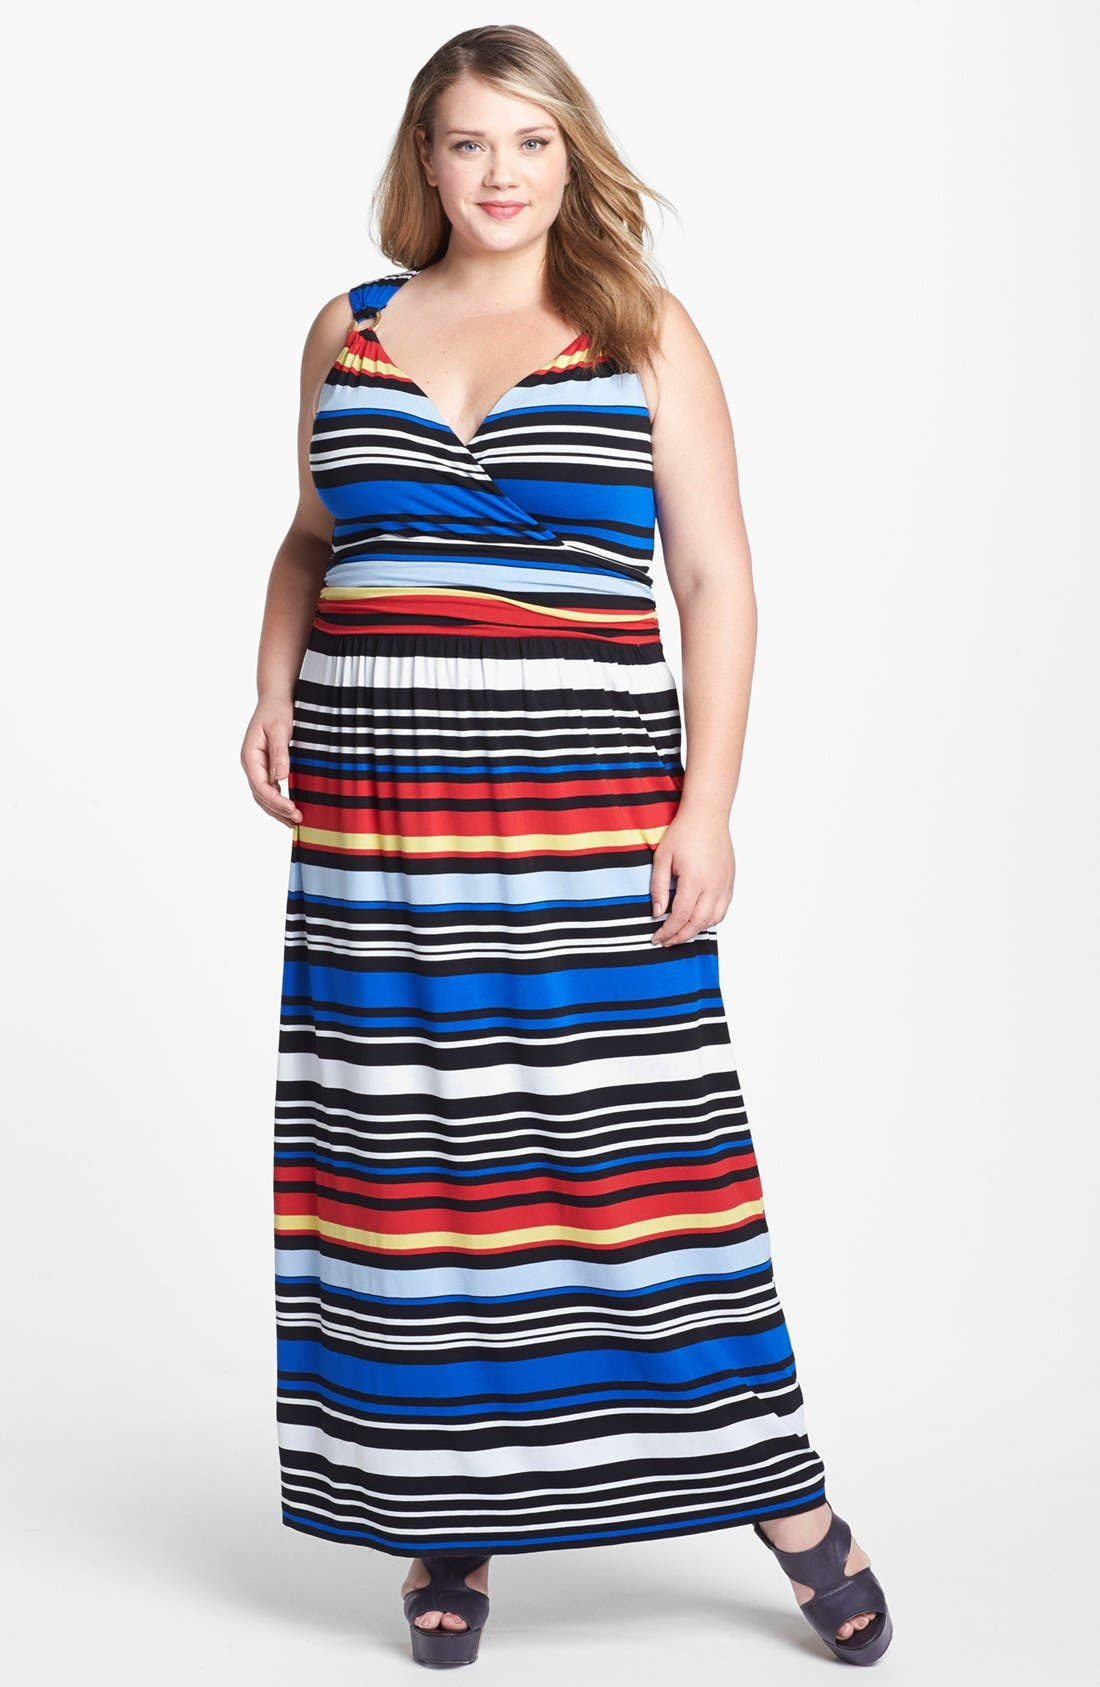 Alternate Image 1 Selected - Vince Camuto Bright Stripe Maxi Dress (Plus Size) (Online Only)